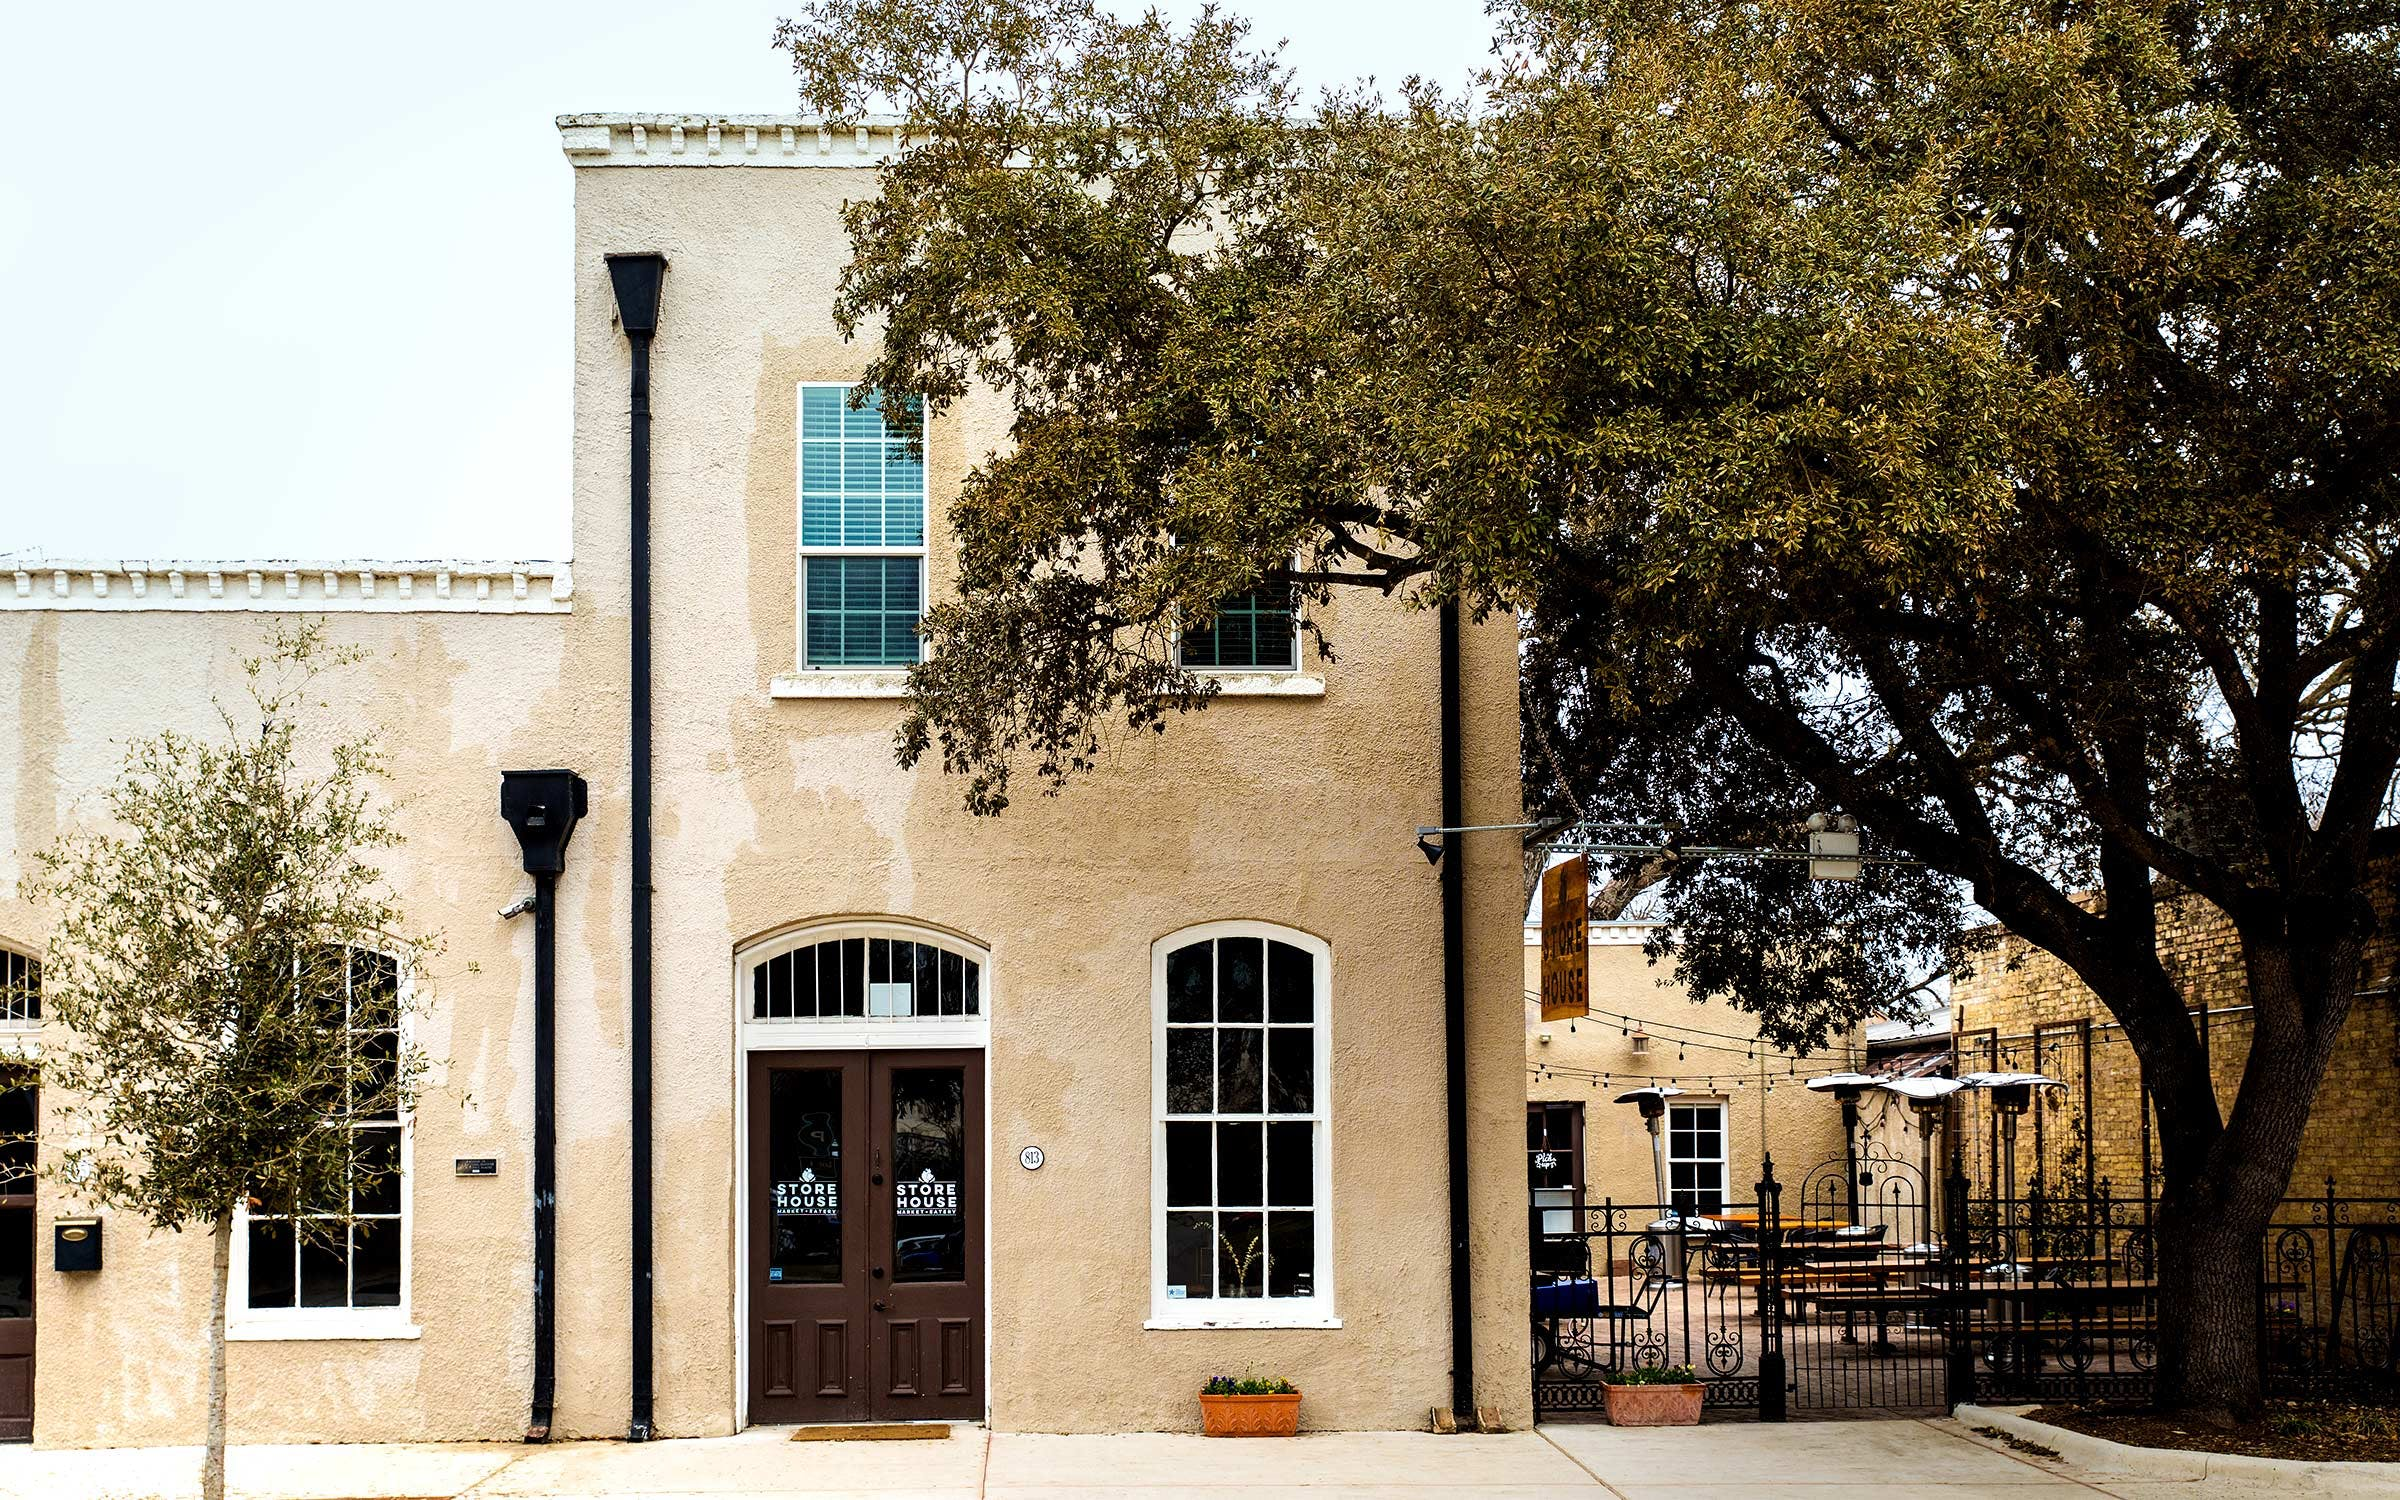 The exterior of Store House Market & Eatery.